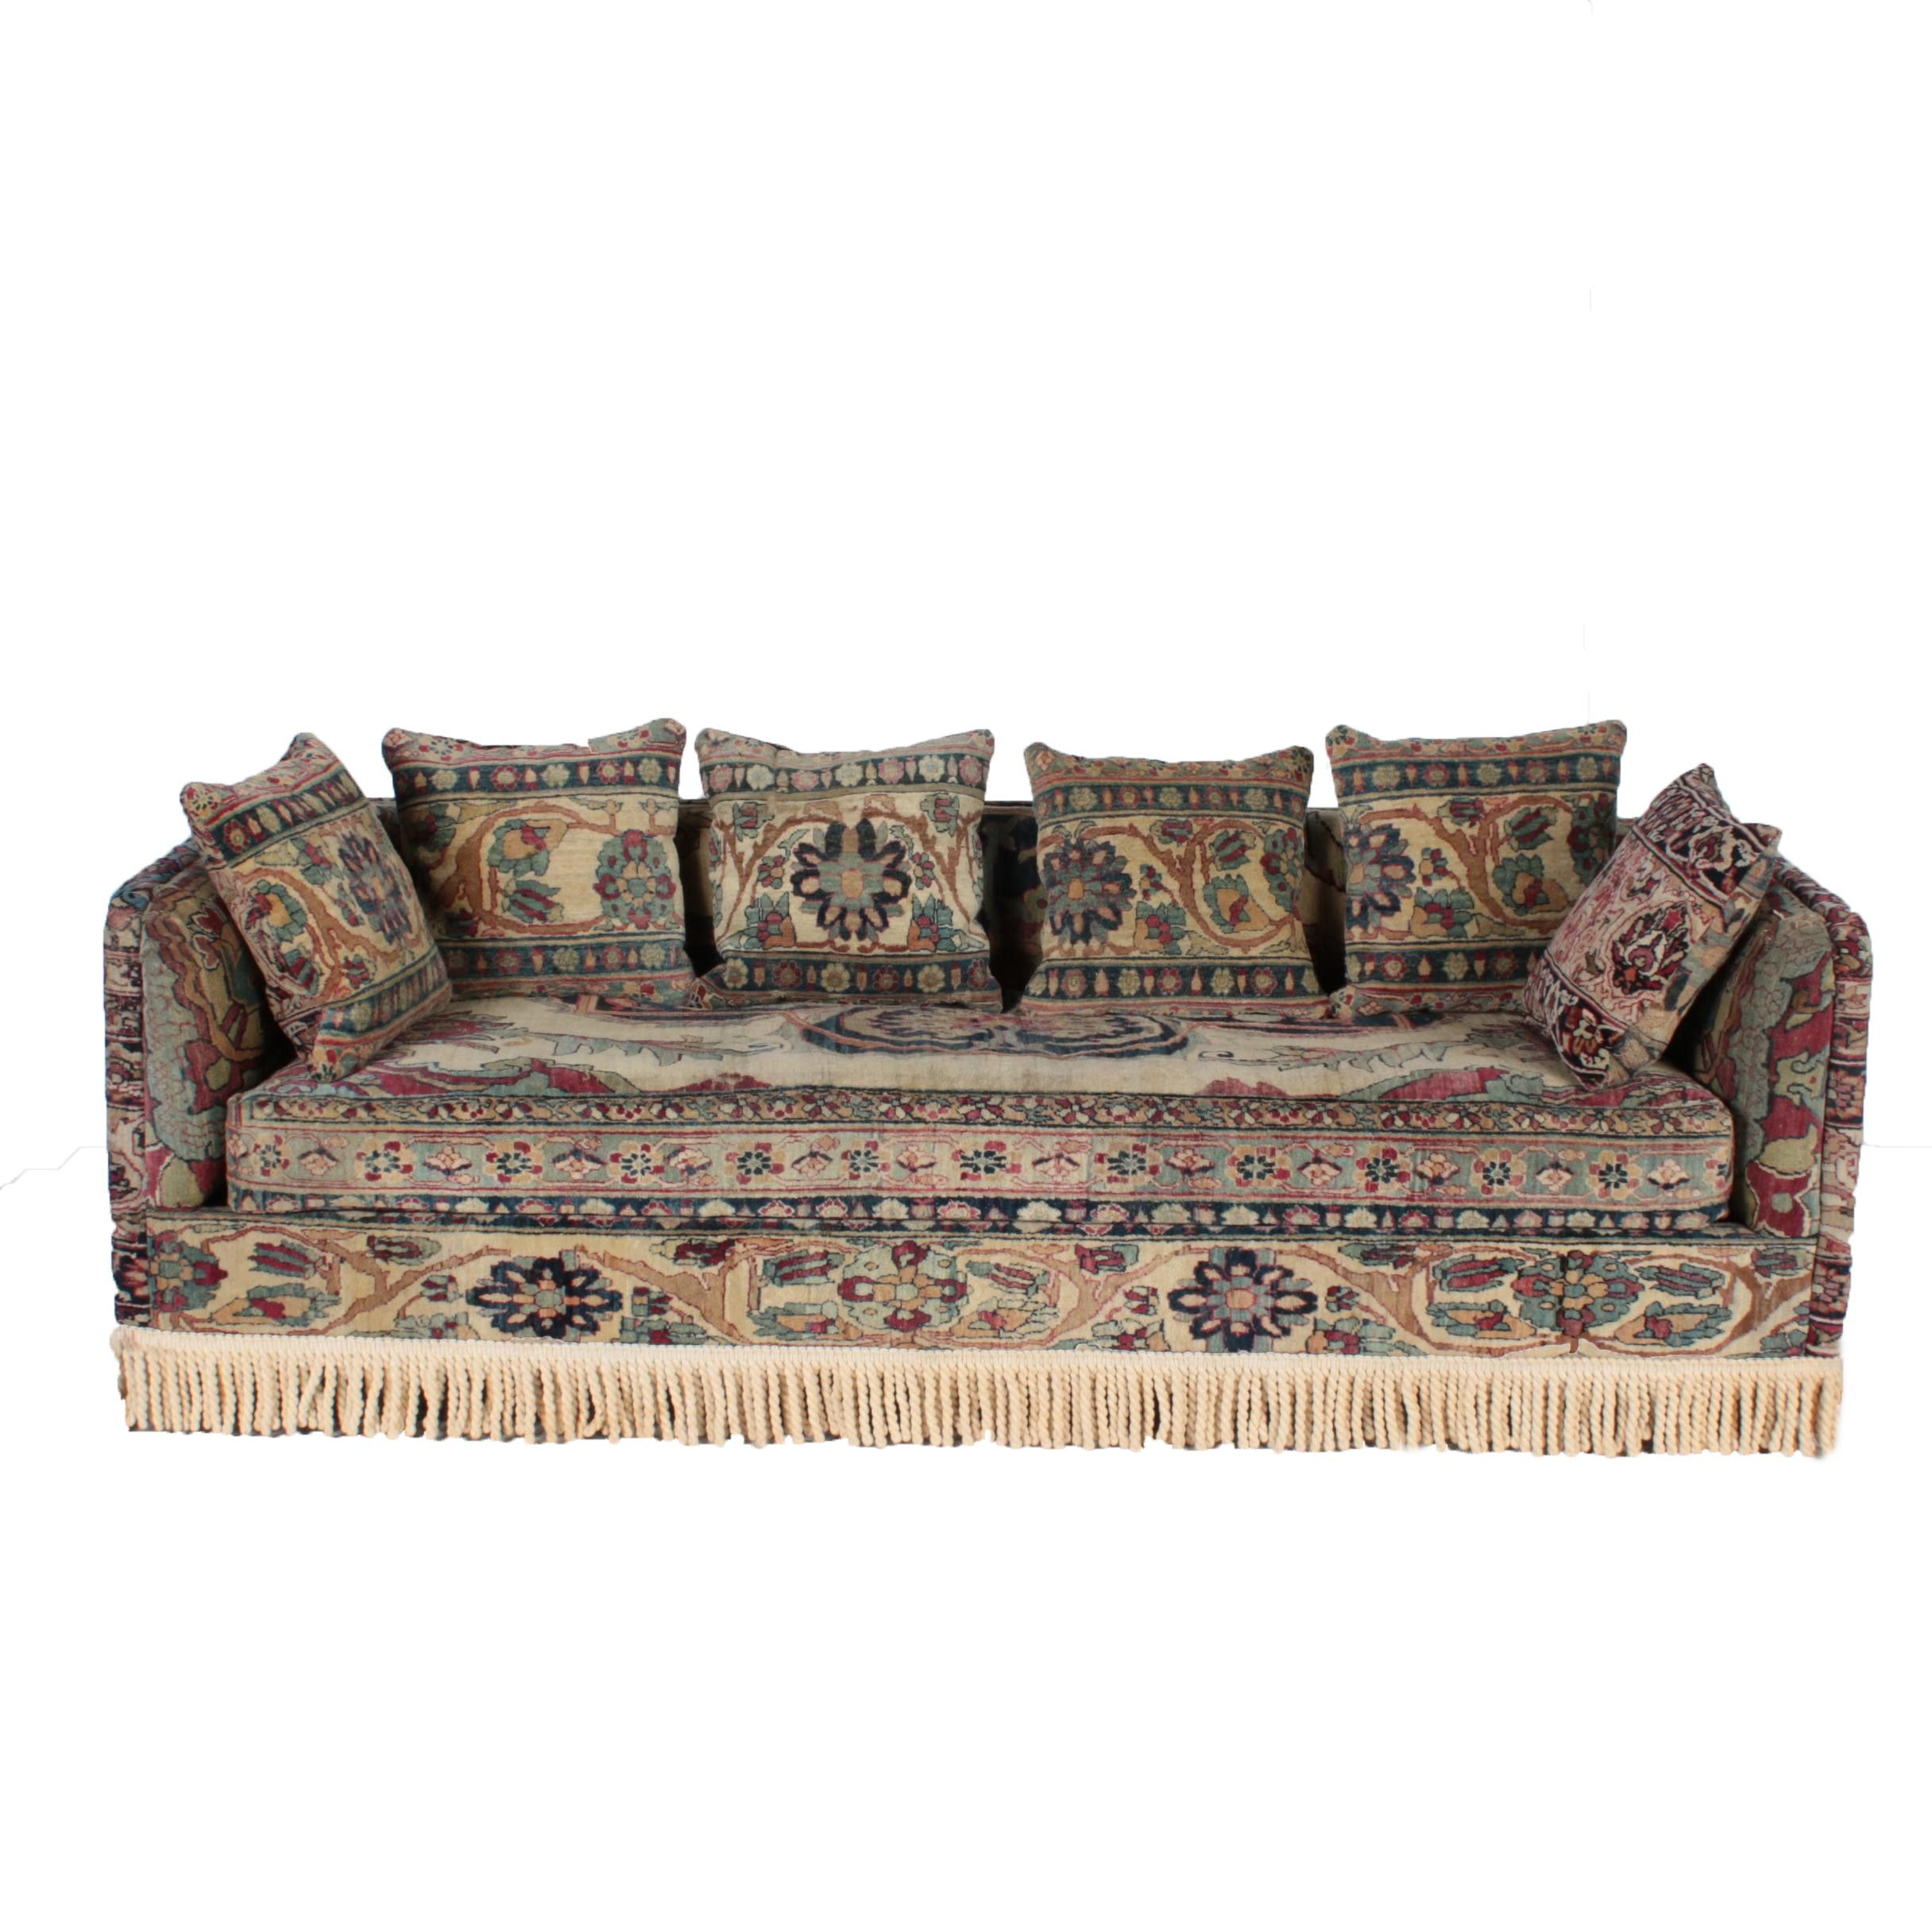 Custom Oushak-Upholstered Sofa by Seret & Sons of Santa Fe